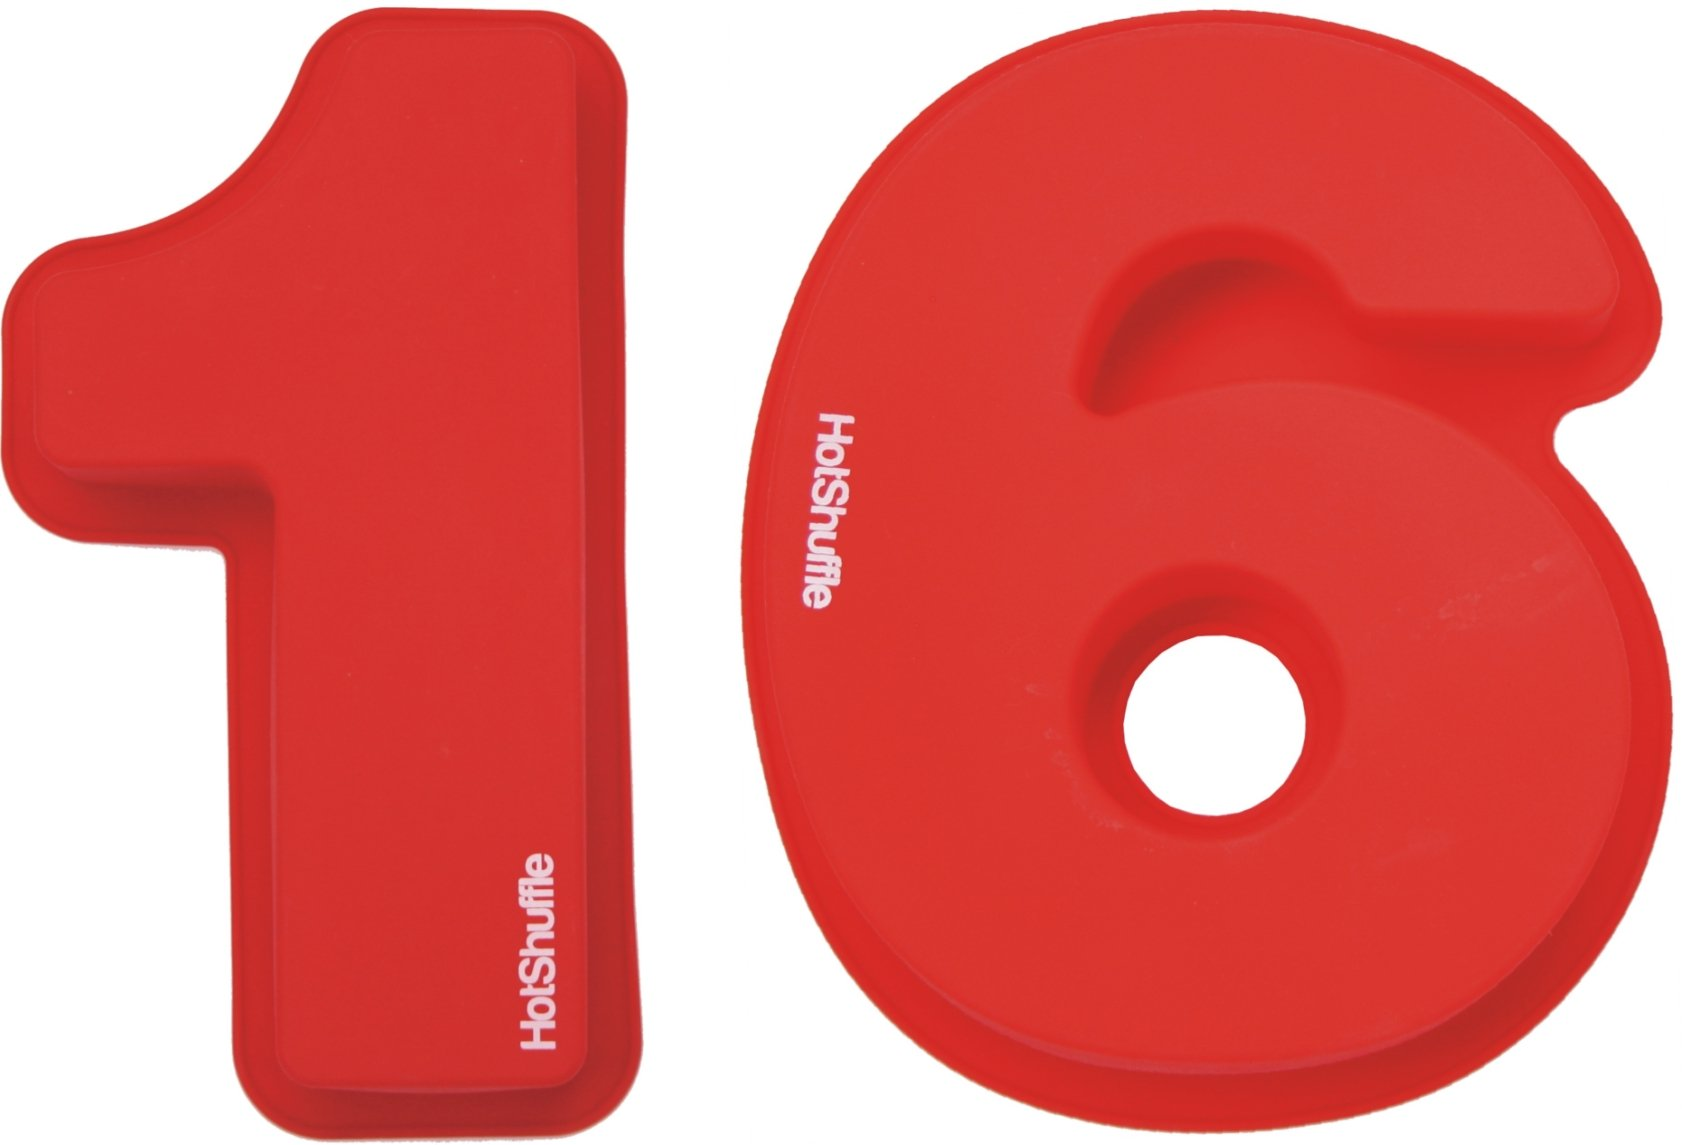 Large Silicone Number 16 Cake Pan Tin Mould 16th Birthday Gift 1 6 by HotShuffle (Image #1)